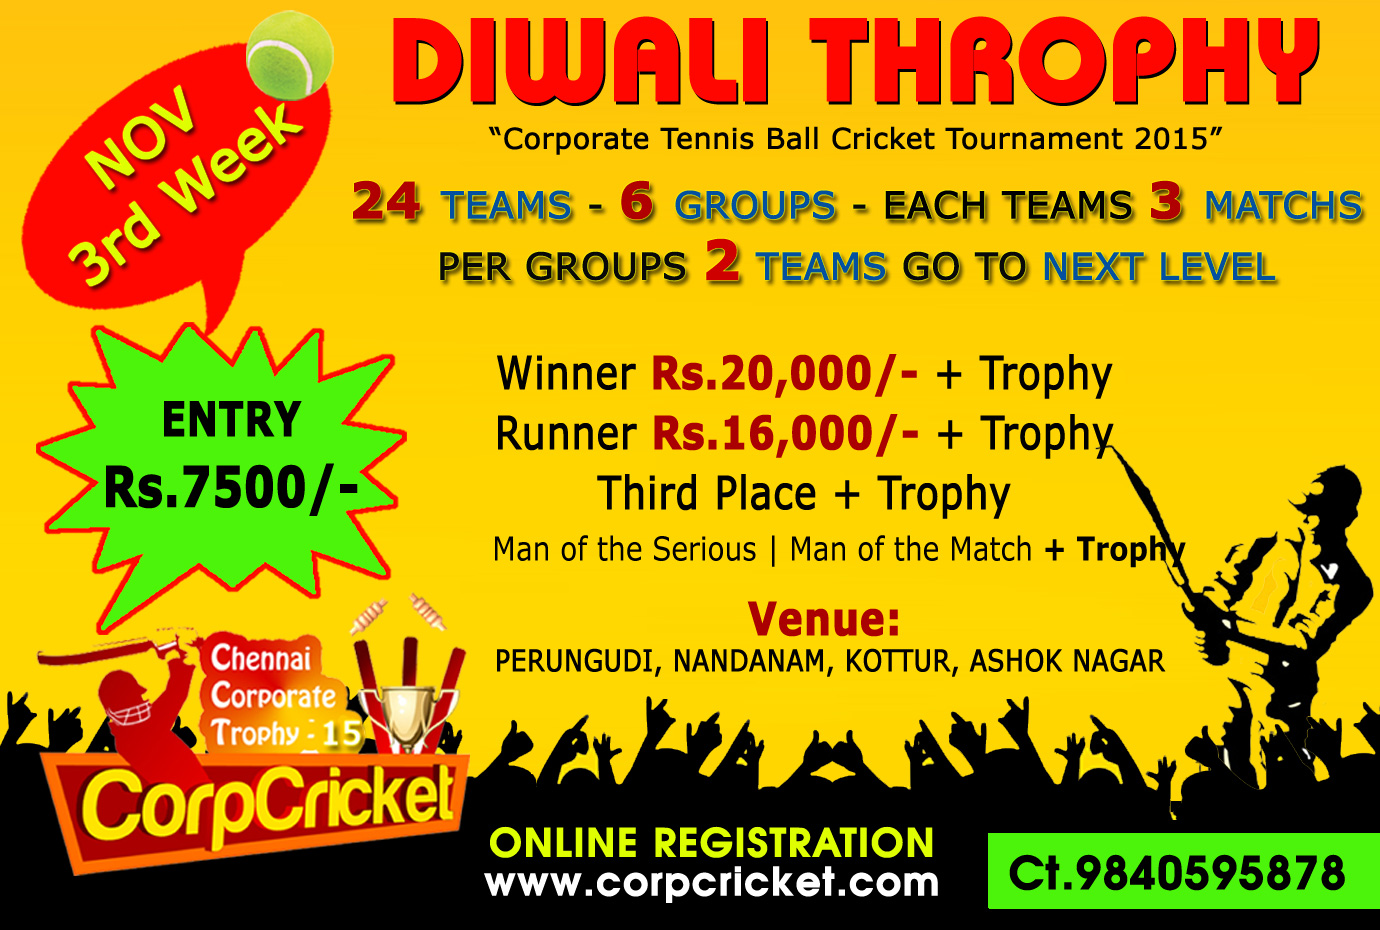 CORPORATE DIWALI TROPHY CRICKET TOURNAMENT